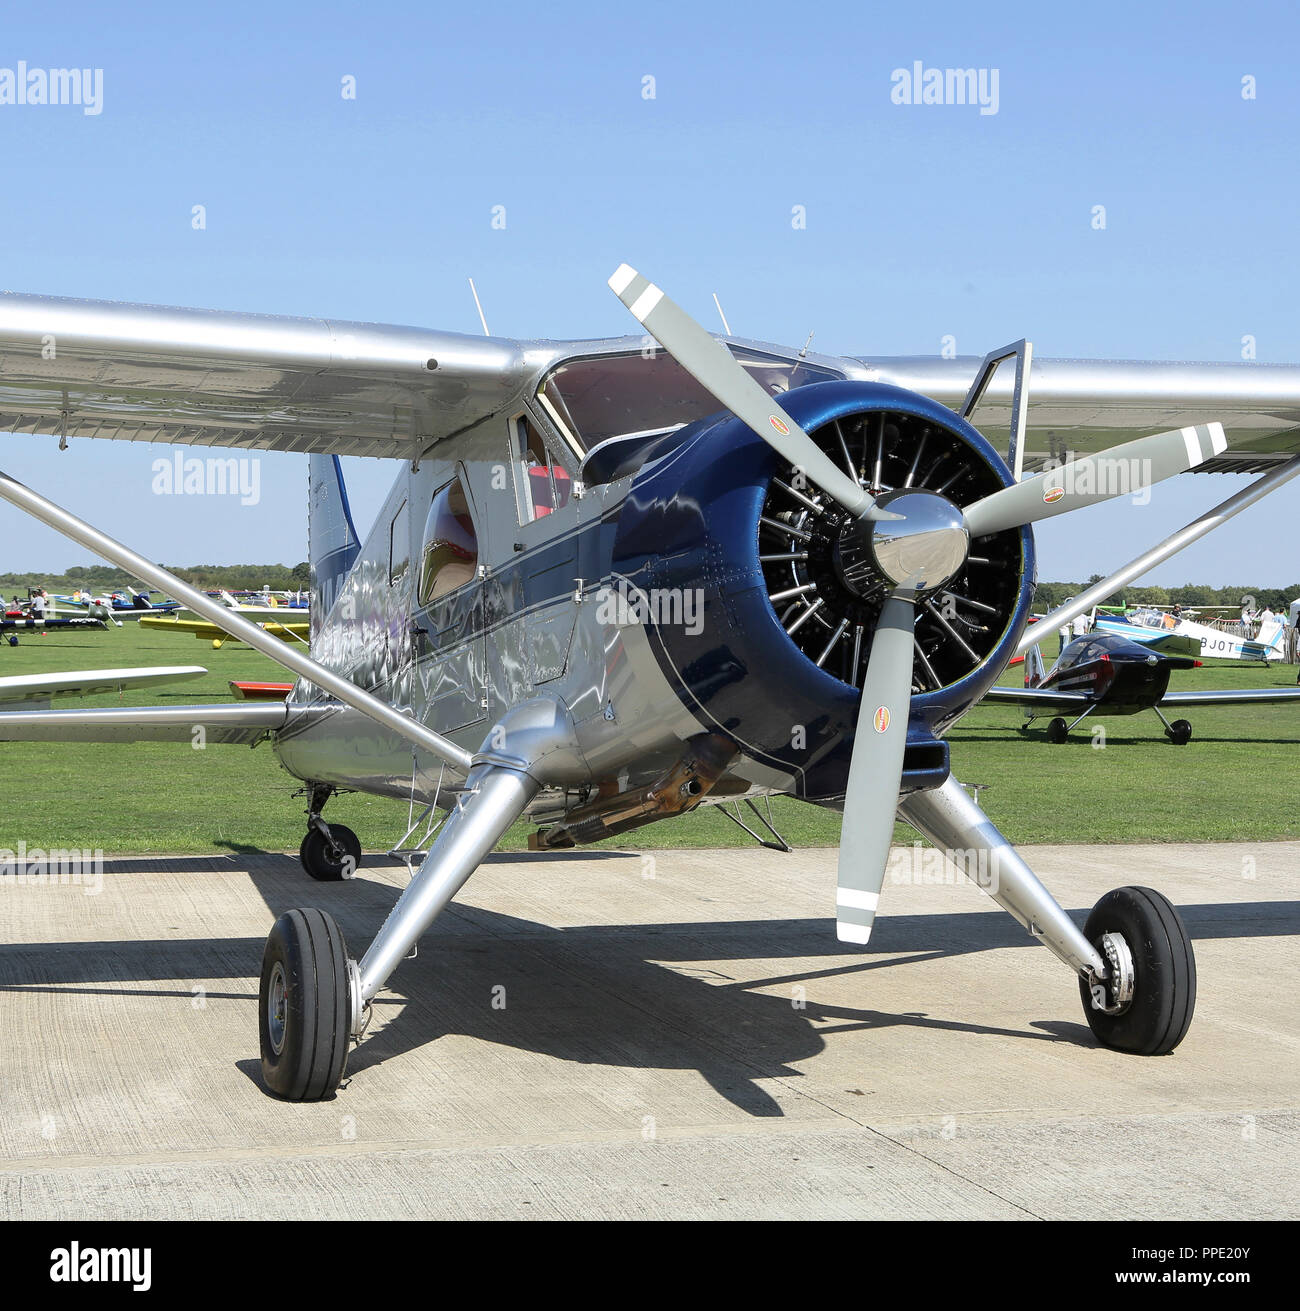 The de Havilland Canada DHC 2 Beaver at the LAA Rally at Sywell - Stock Image